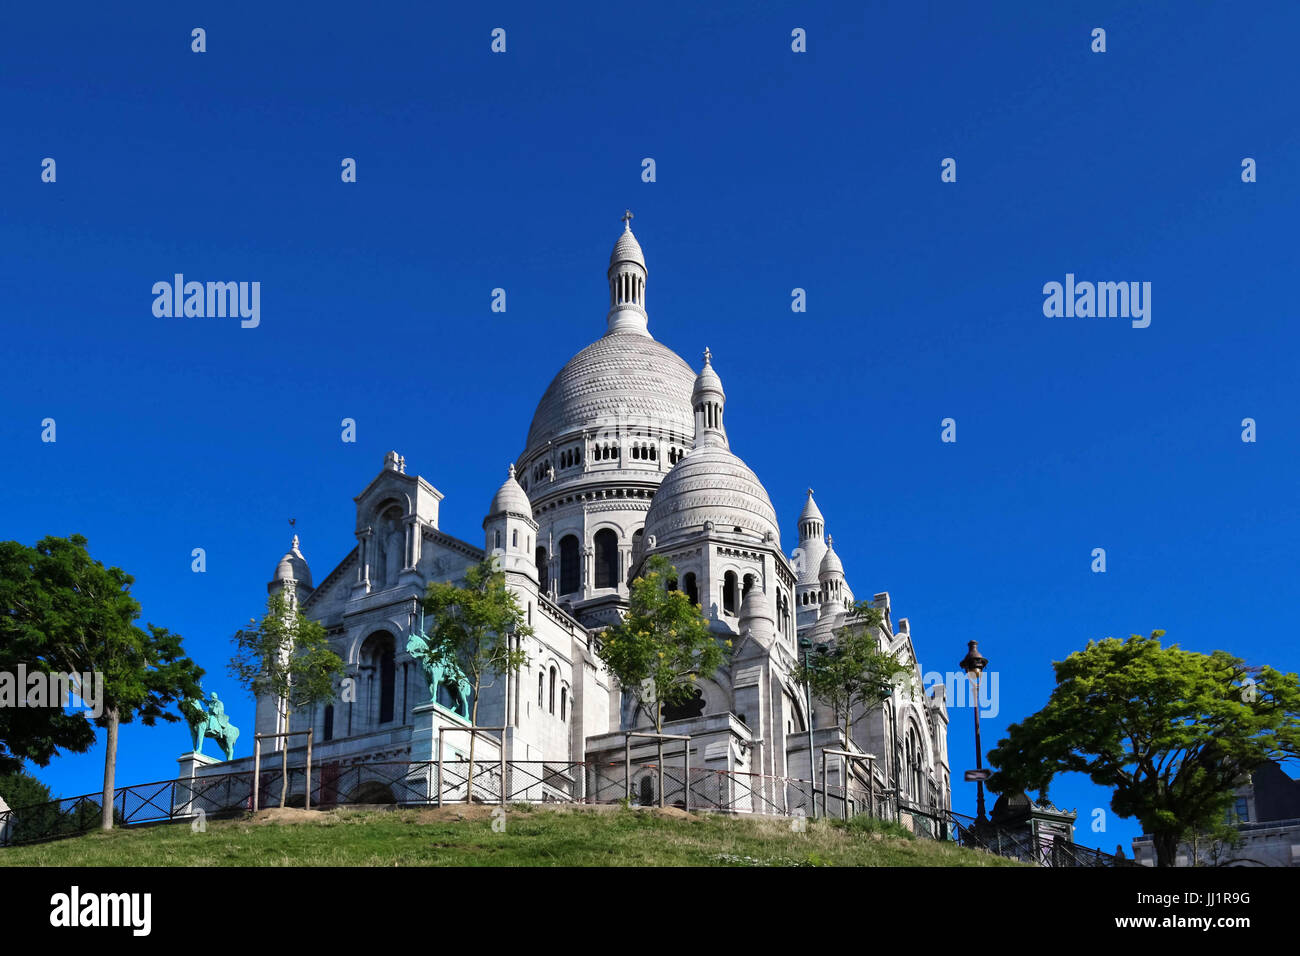 The basilica of Sacre-Coeur in Montmartre, Paris. - Stock Image